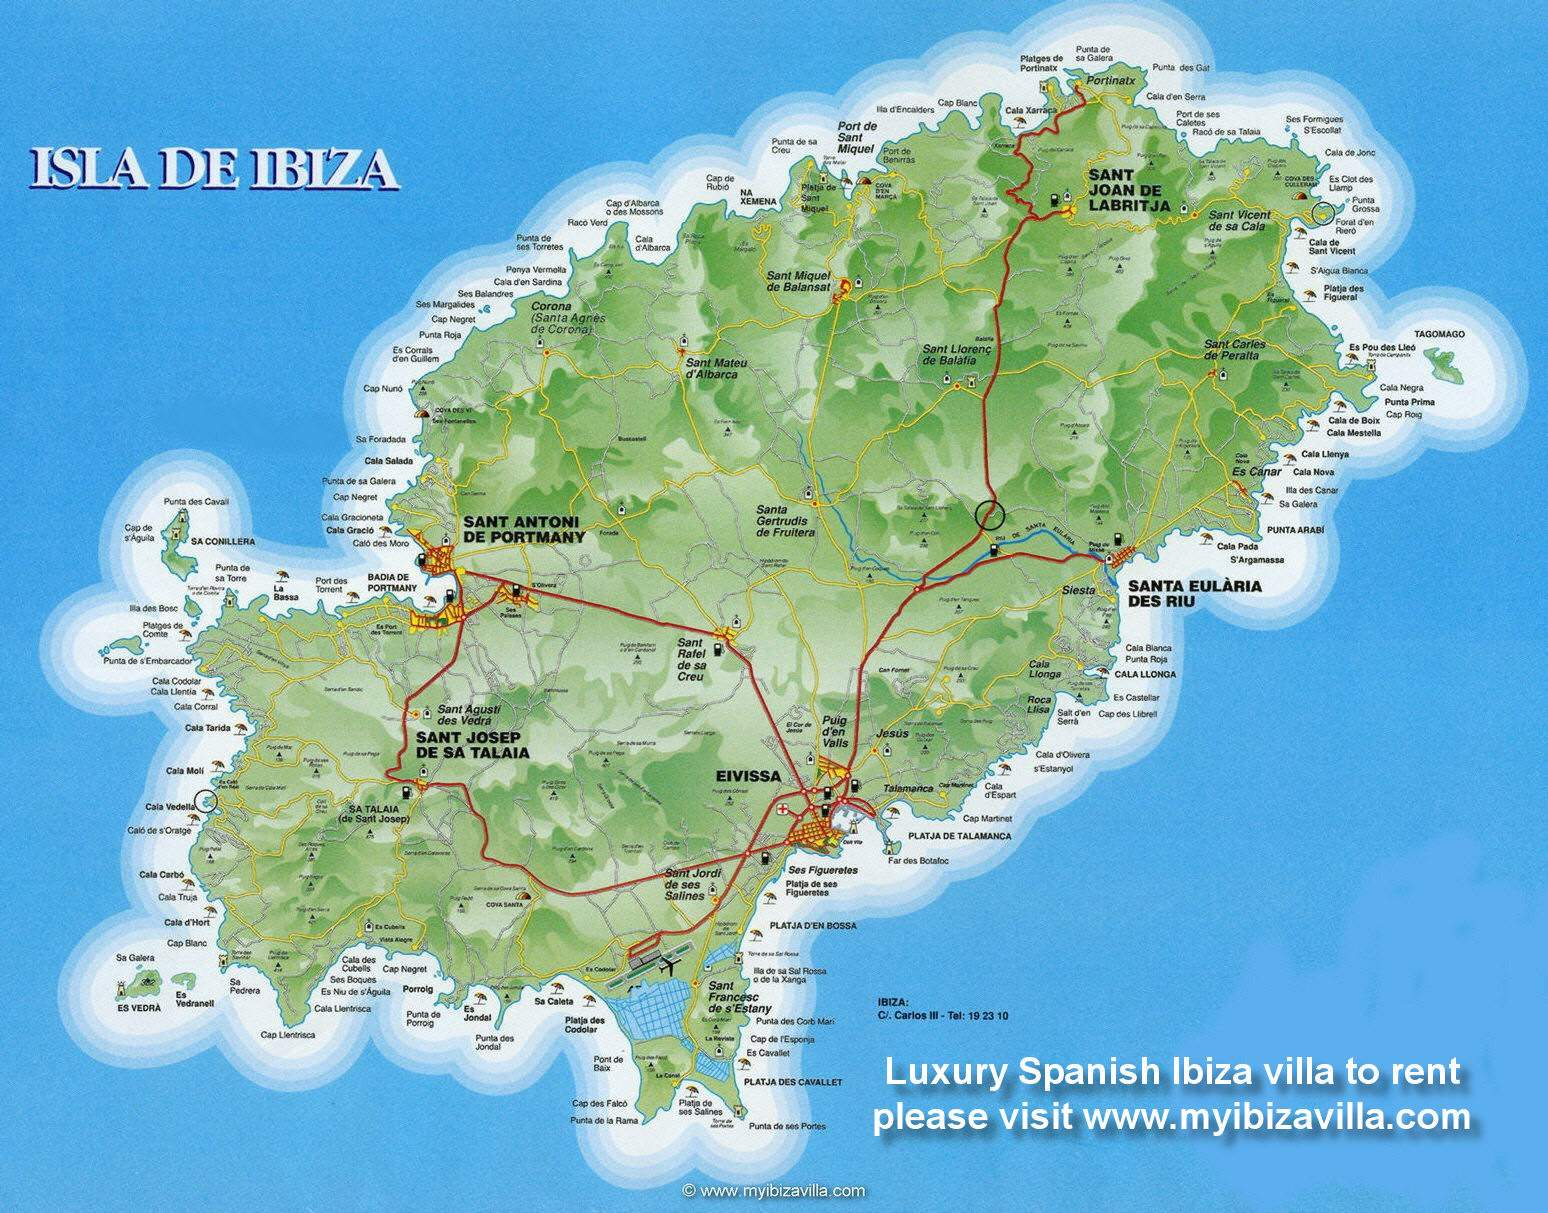 Ibiza Karte.Large Ibiza Maps For Free Download And Print High Resolution And